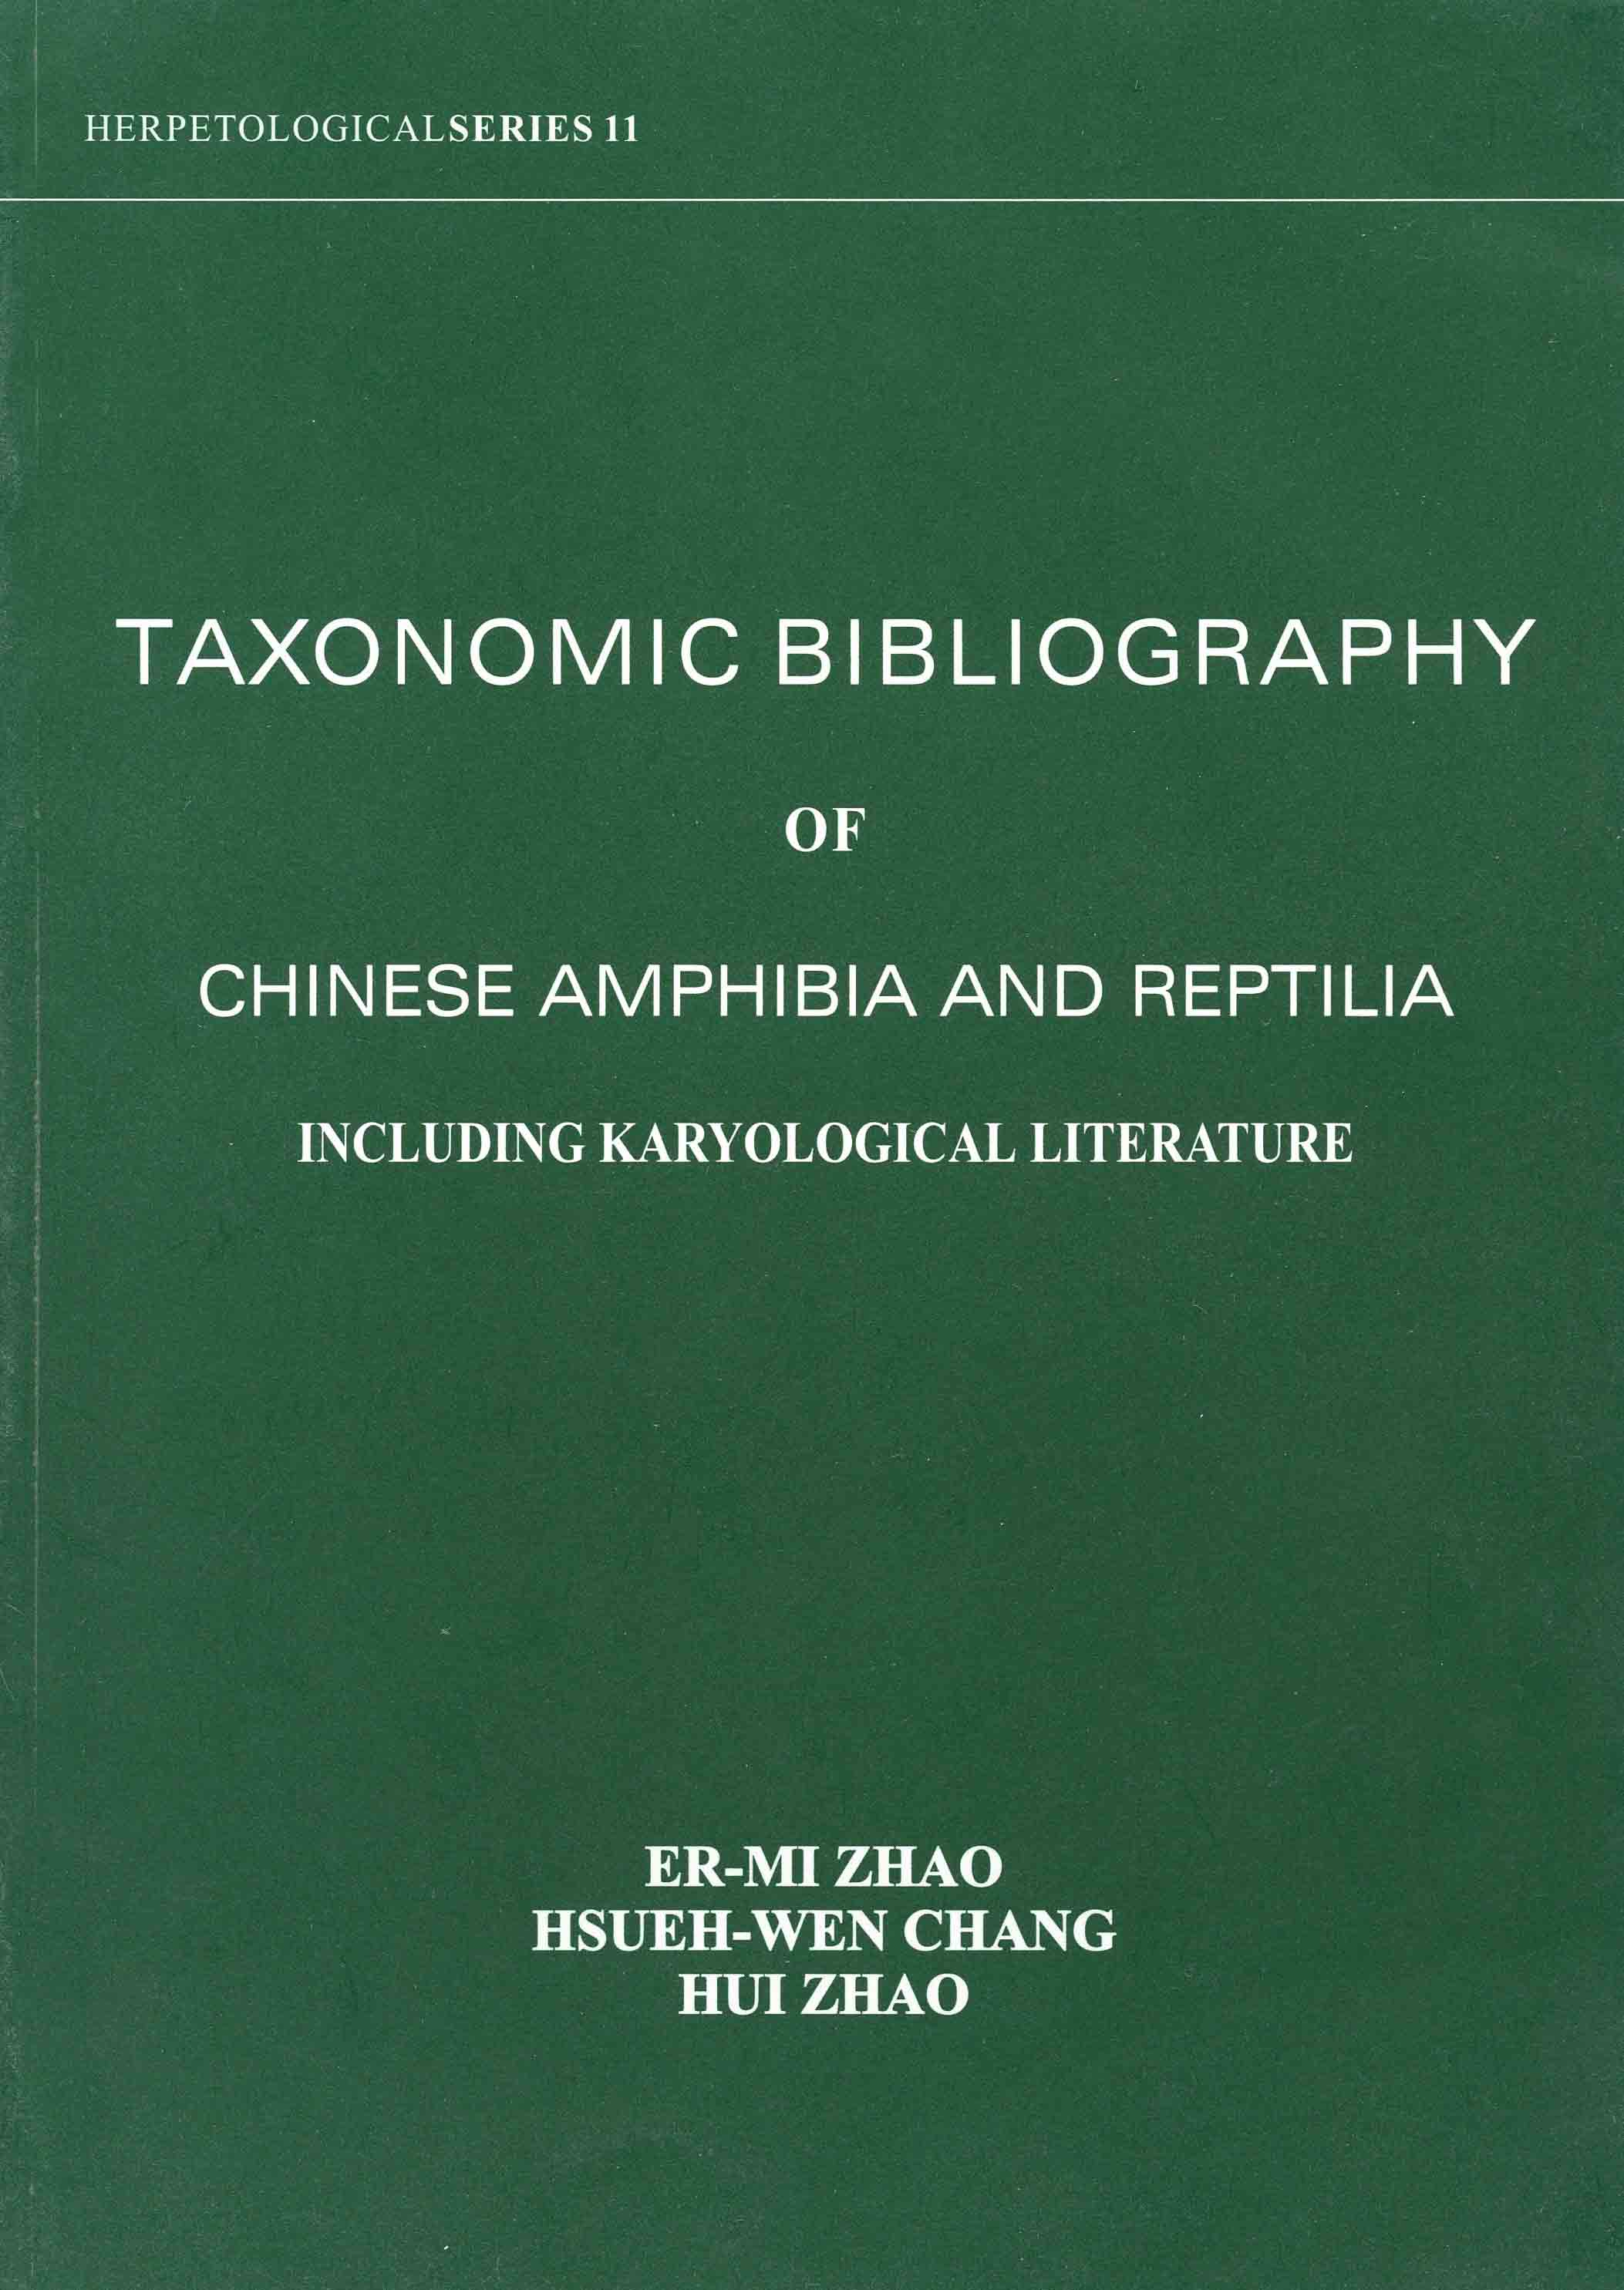 Image for Taxonomic Bibliography of Chinese Amphibia and Reptilia Including Karyological Literature